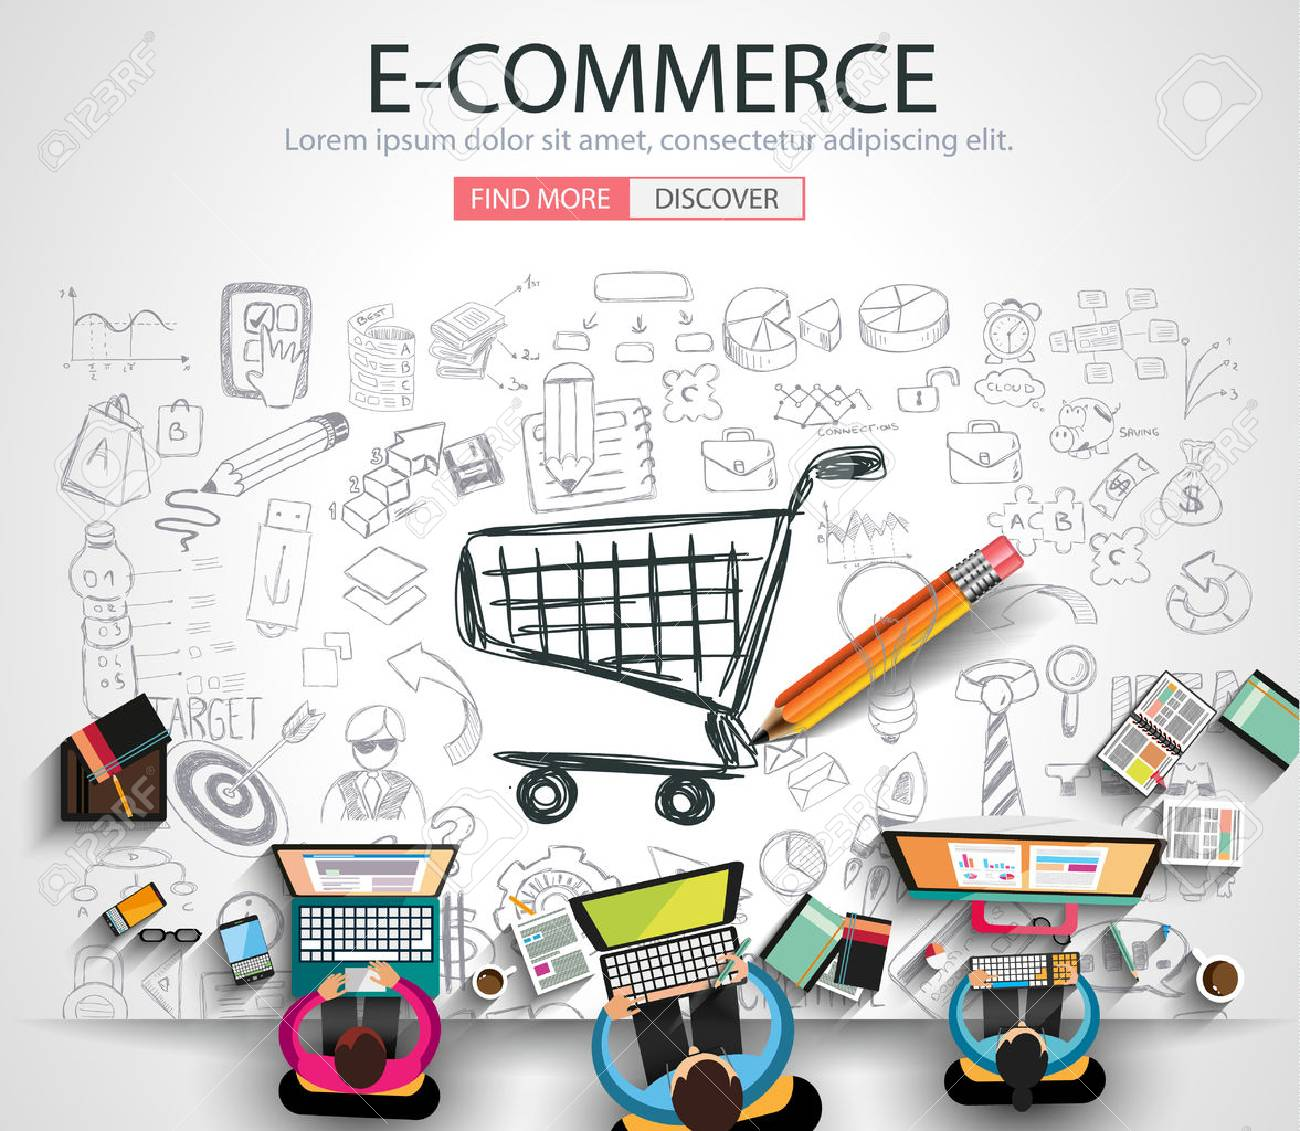 Ecommerce Marketing Banners Cloud Technology Banners